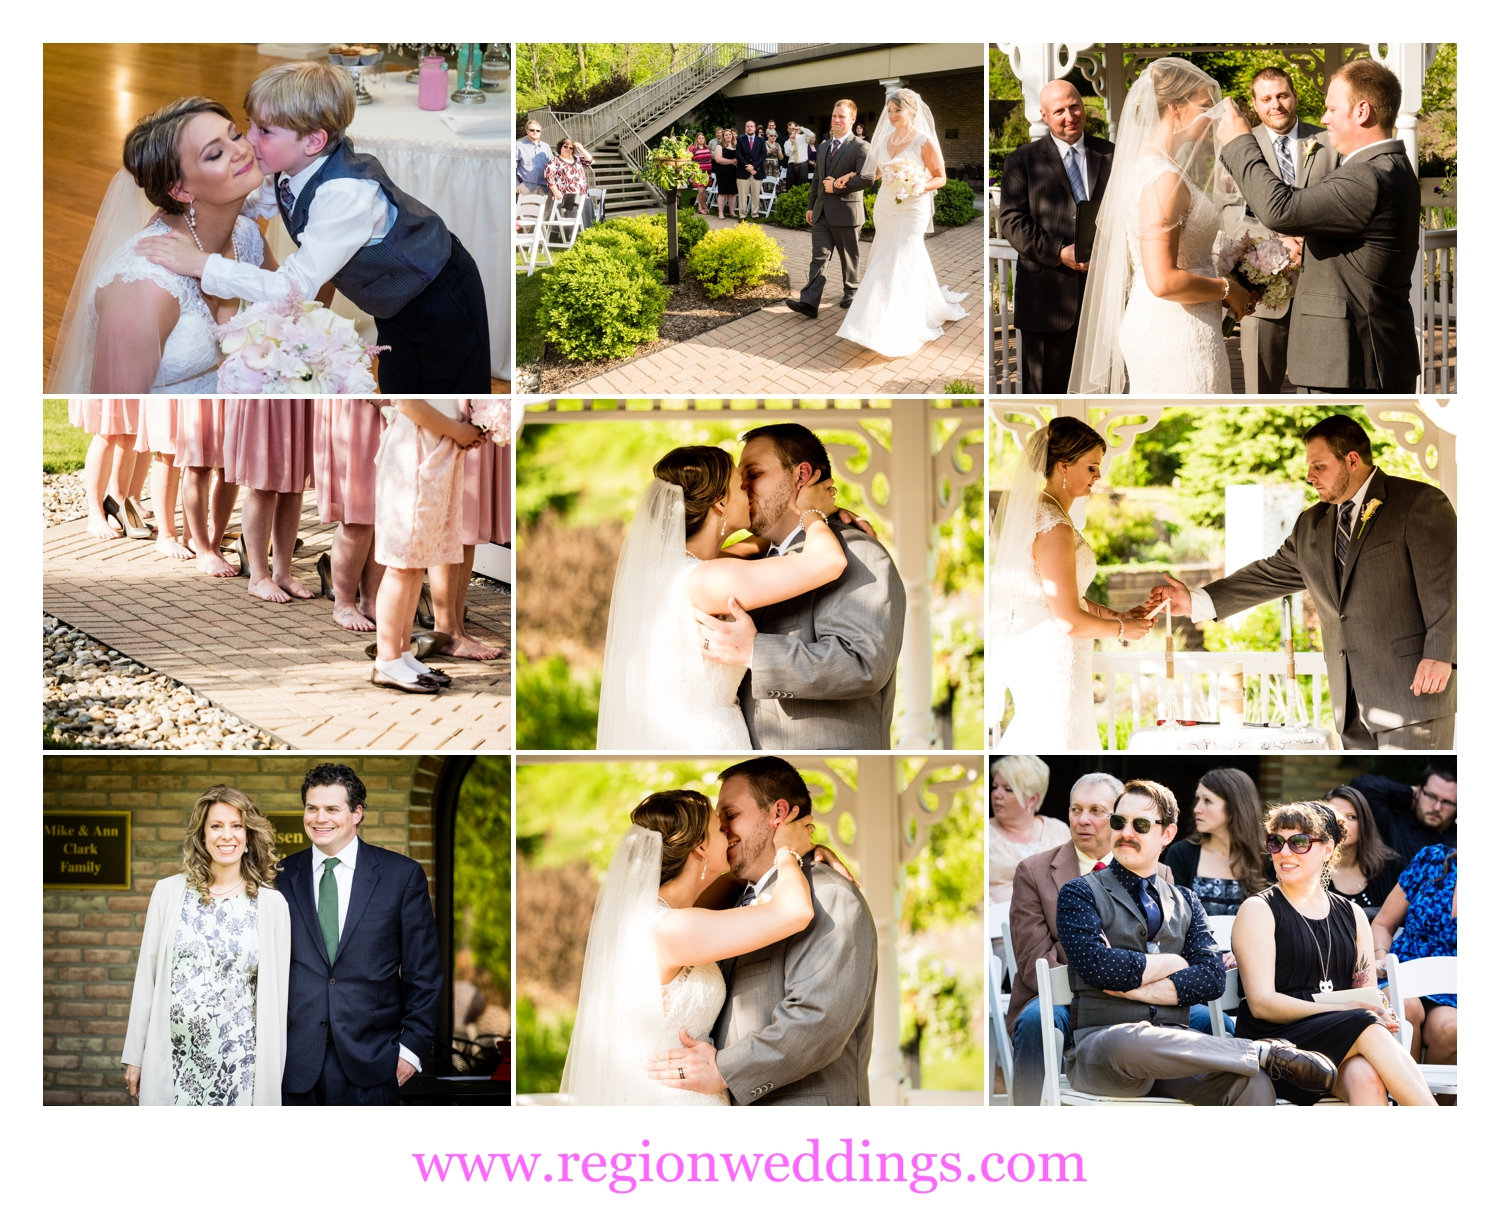 An outdoor wedding ceremony at Trinity Hall in Chesterton, Indiana.